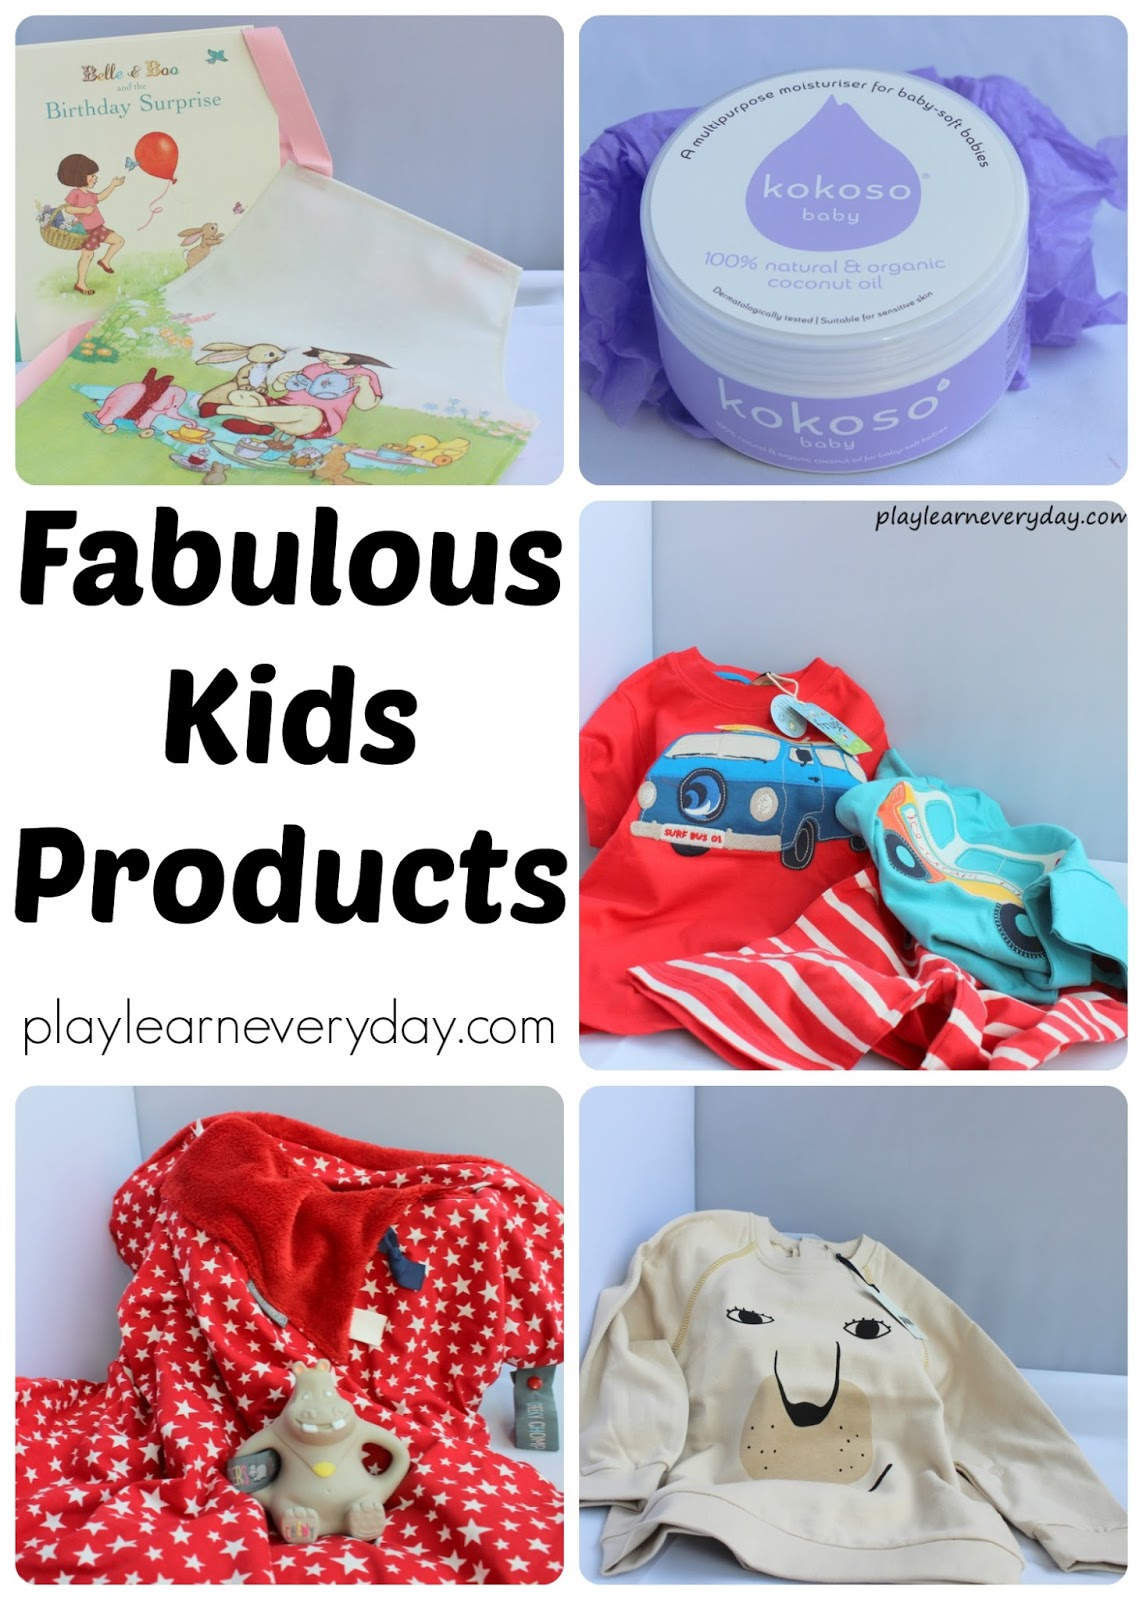 Fabulous Kids Products - Play and Learn Every Day - photo#25